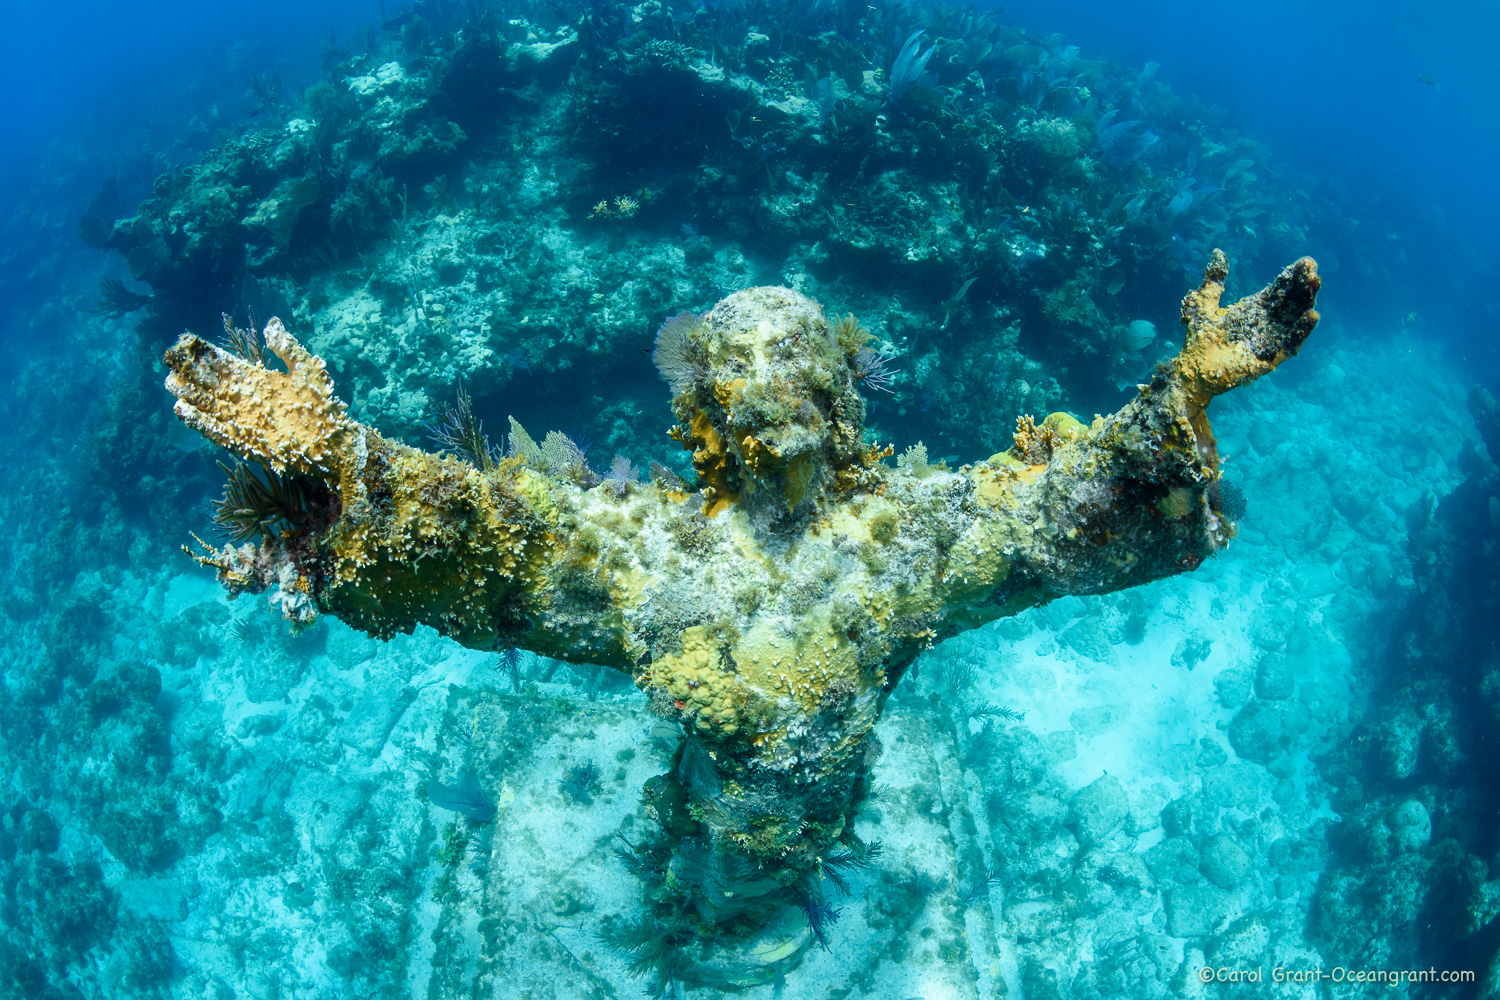 Christ of the Abyss from above,©CGrant-oceangrant.com